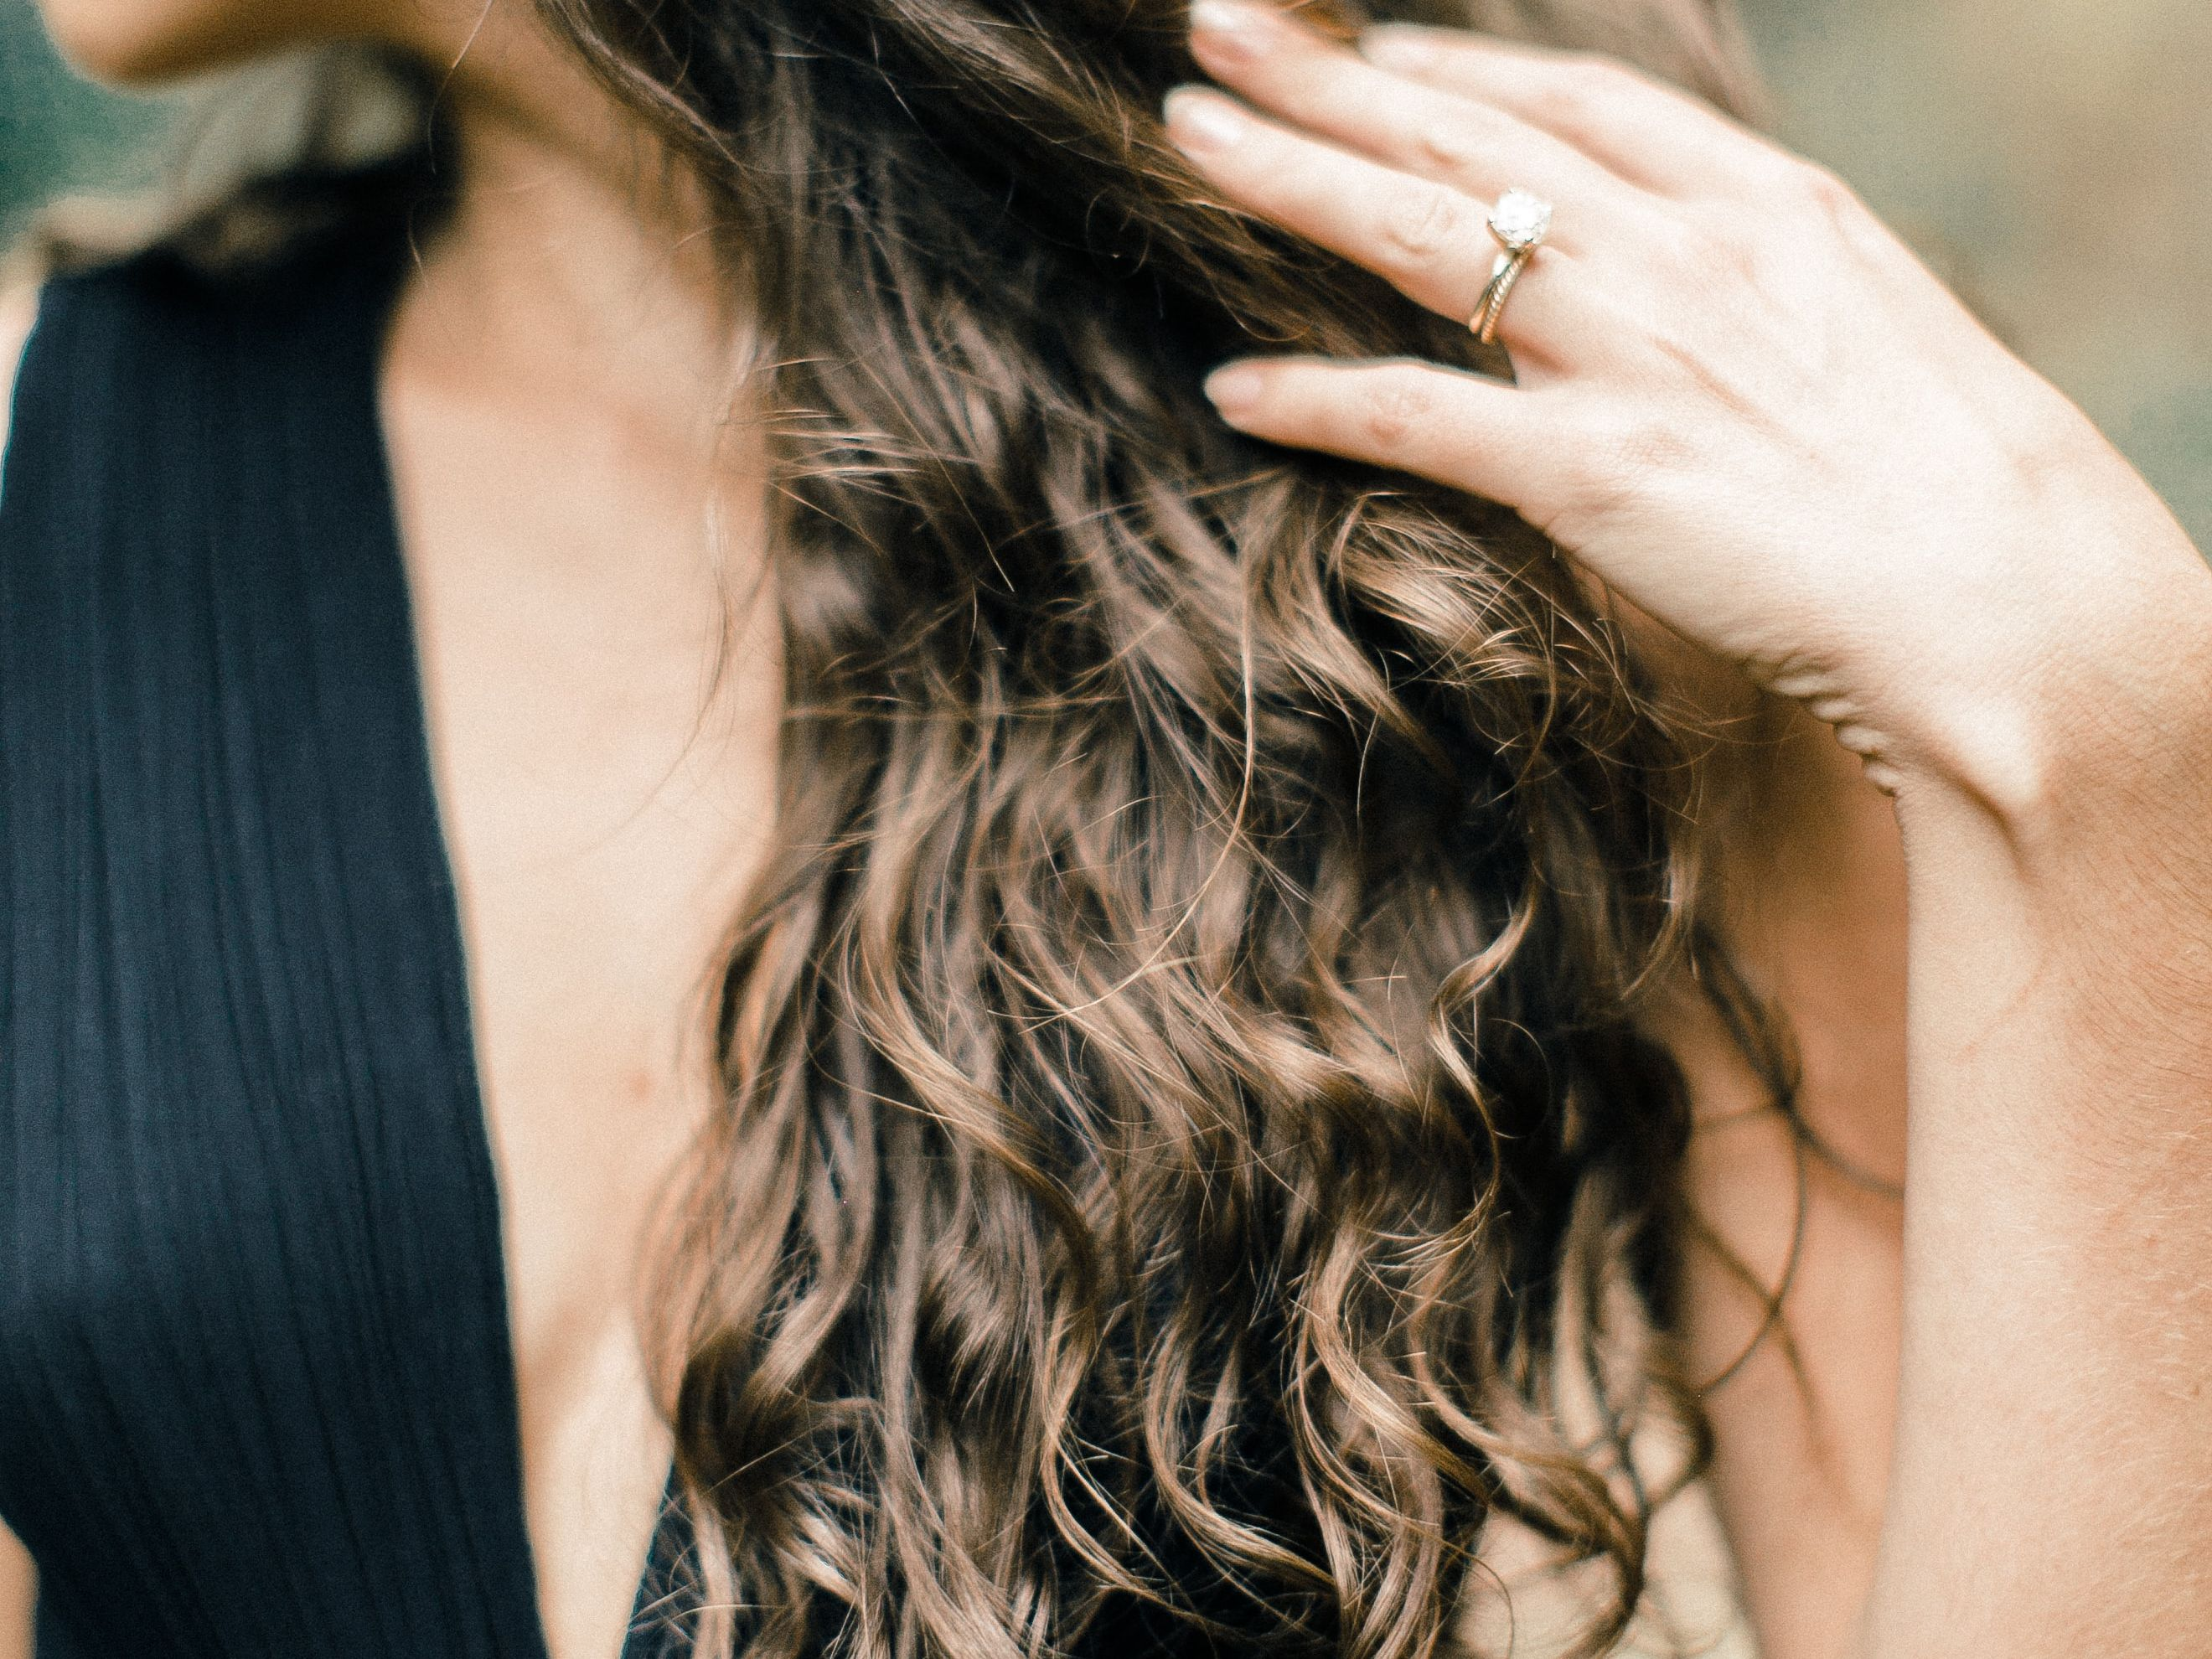 How To Make Your Own All Natural Hair Spray With Just 2 Ingredients